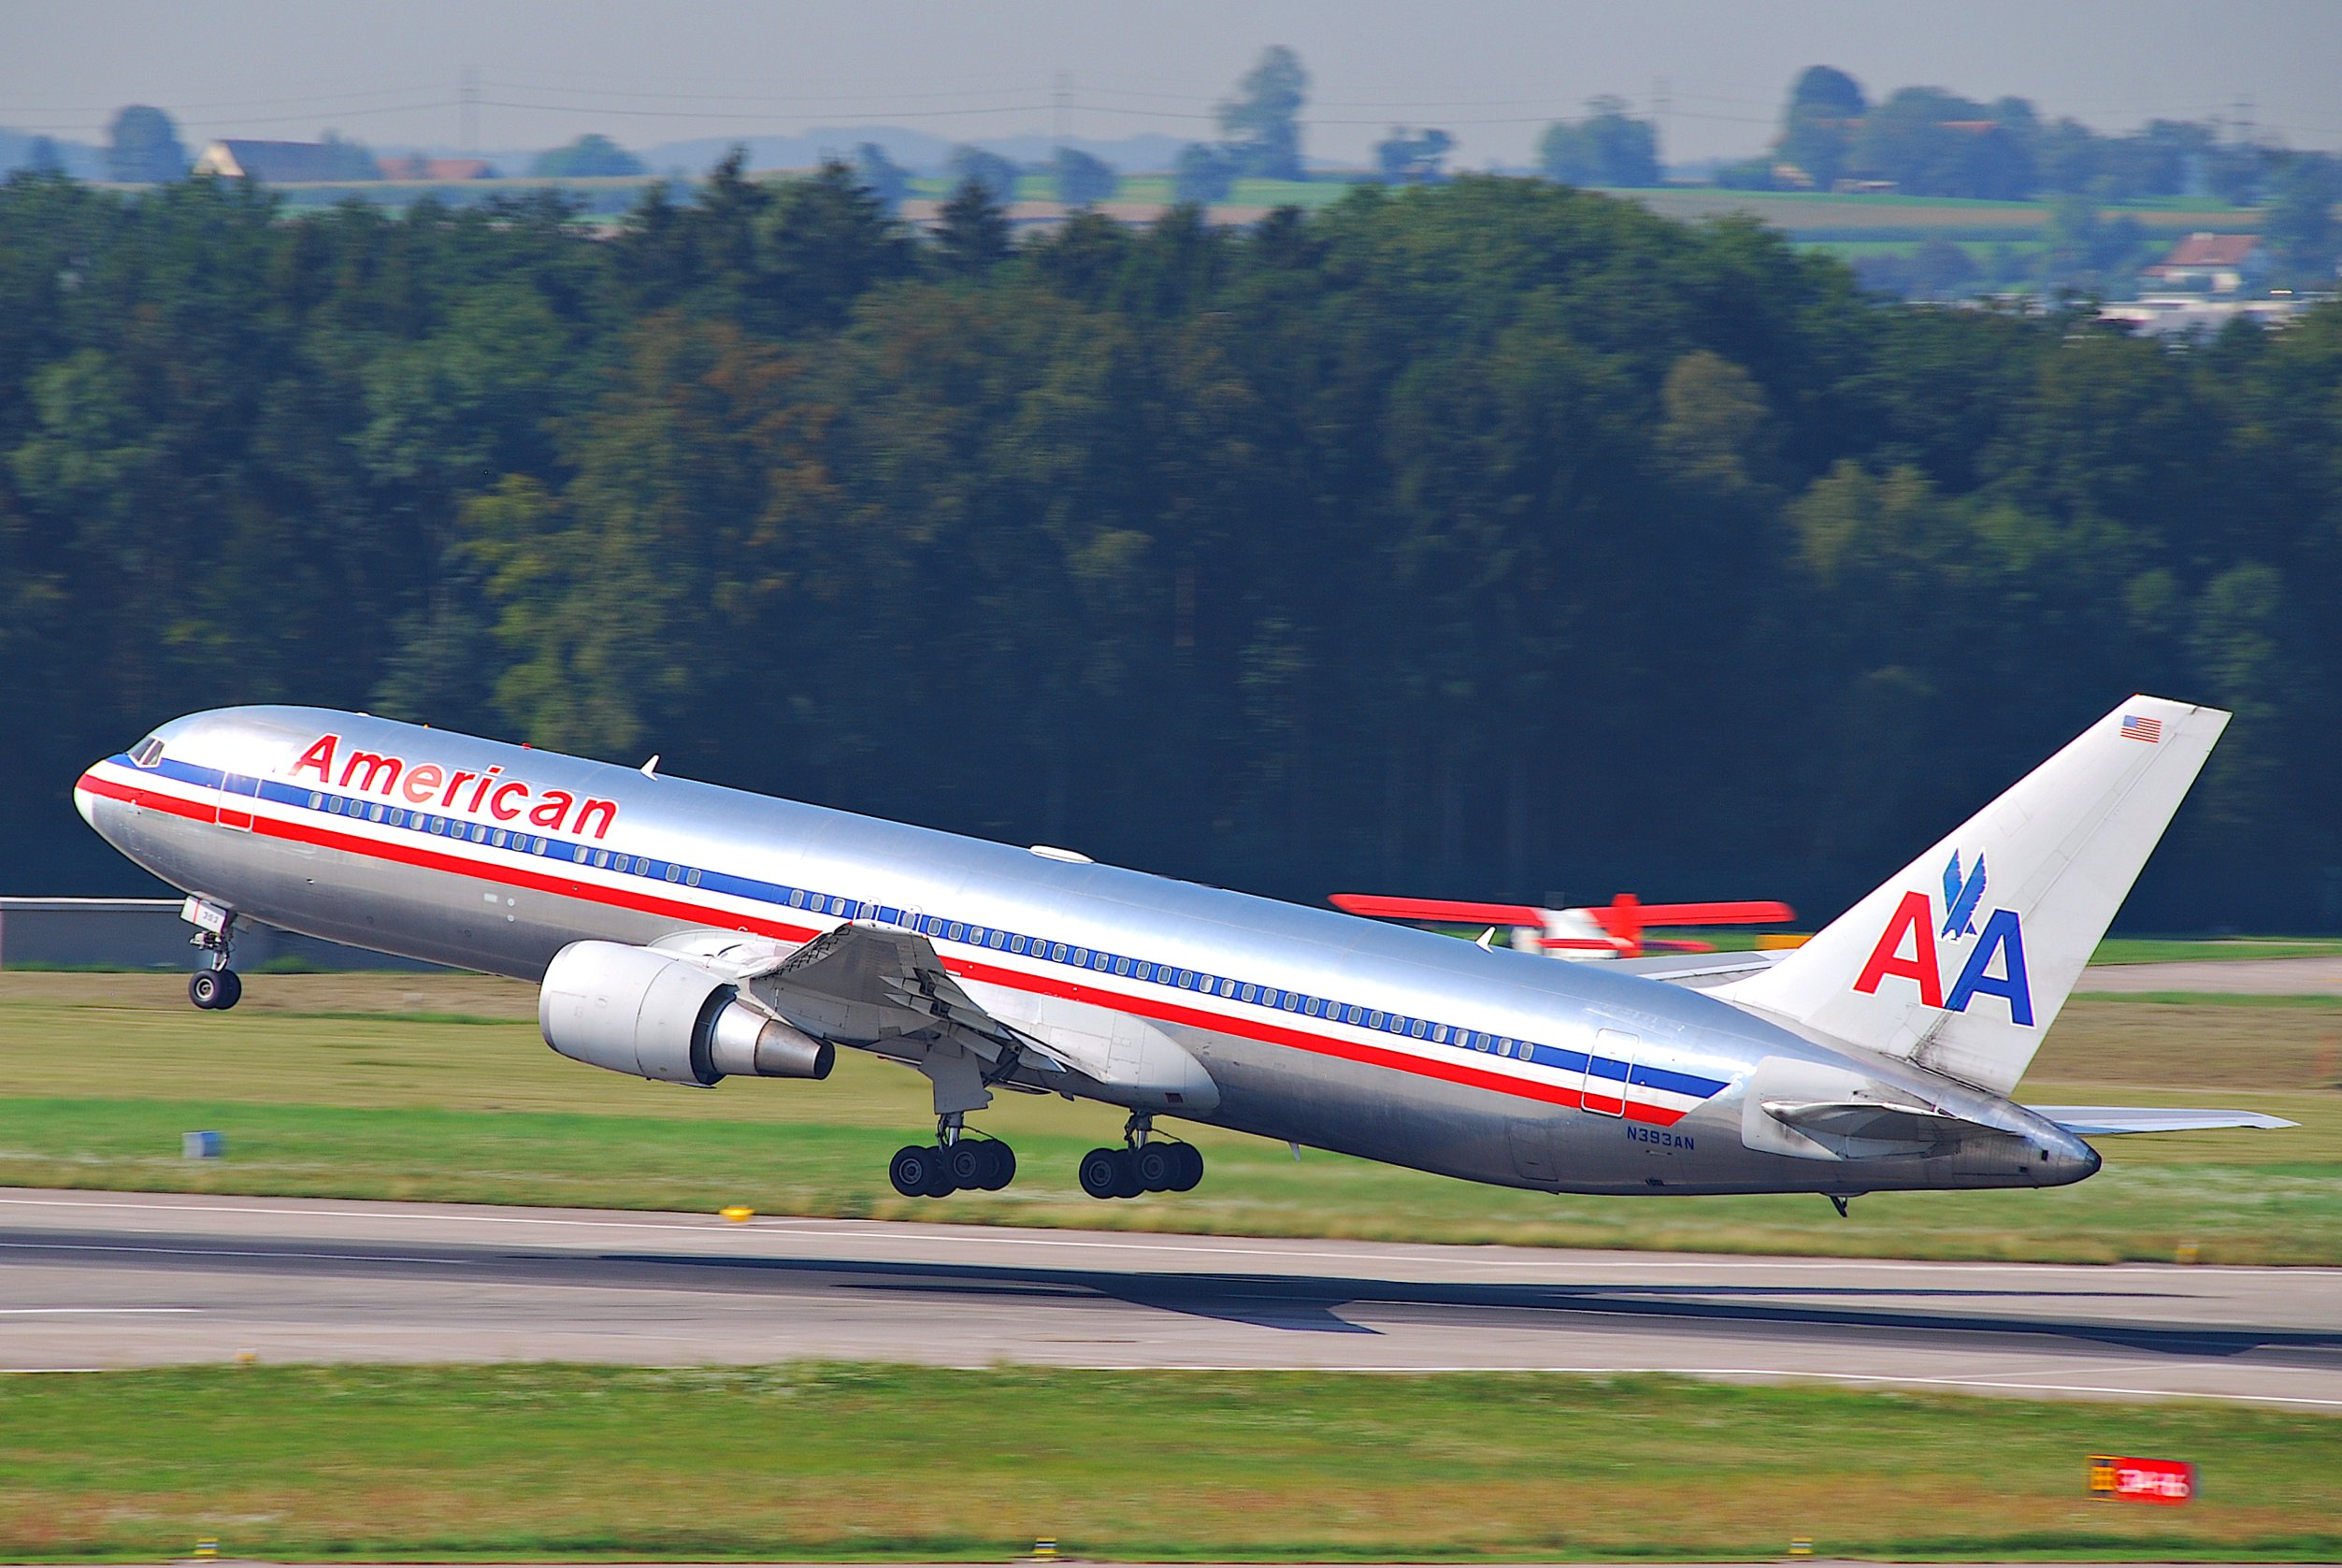 File:American Airlines Boeing 767-300; N393AN@ZRH;20.08 ...